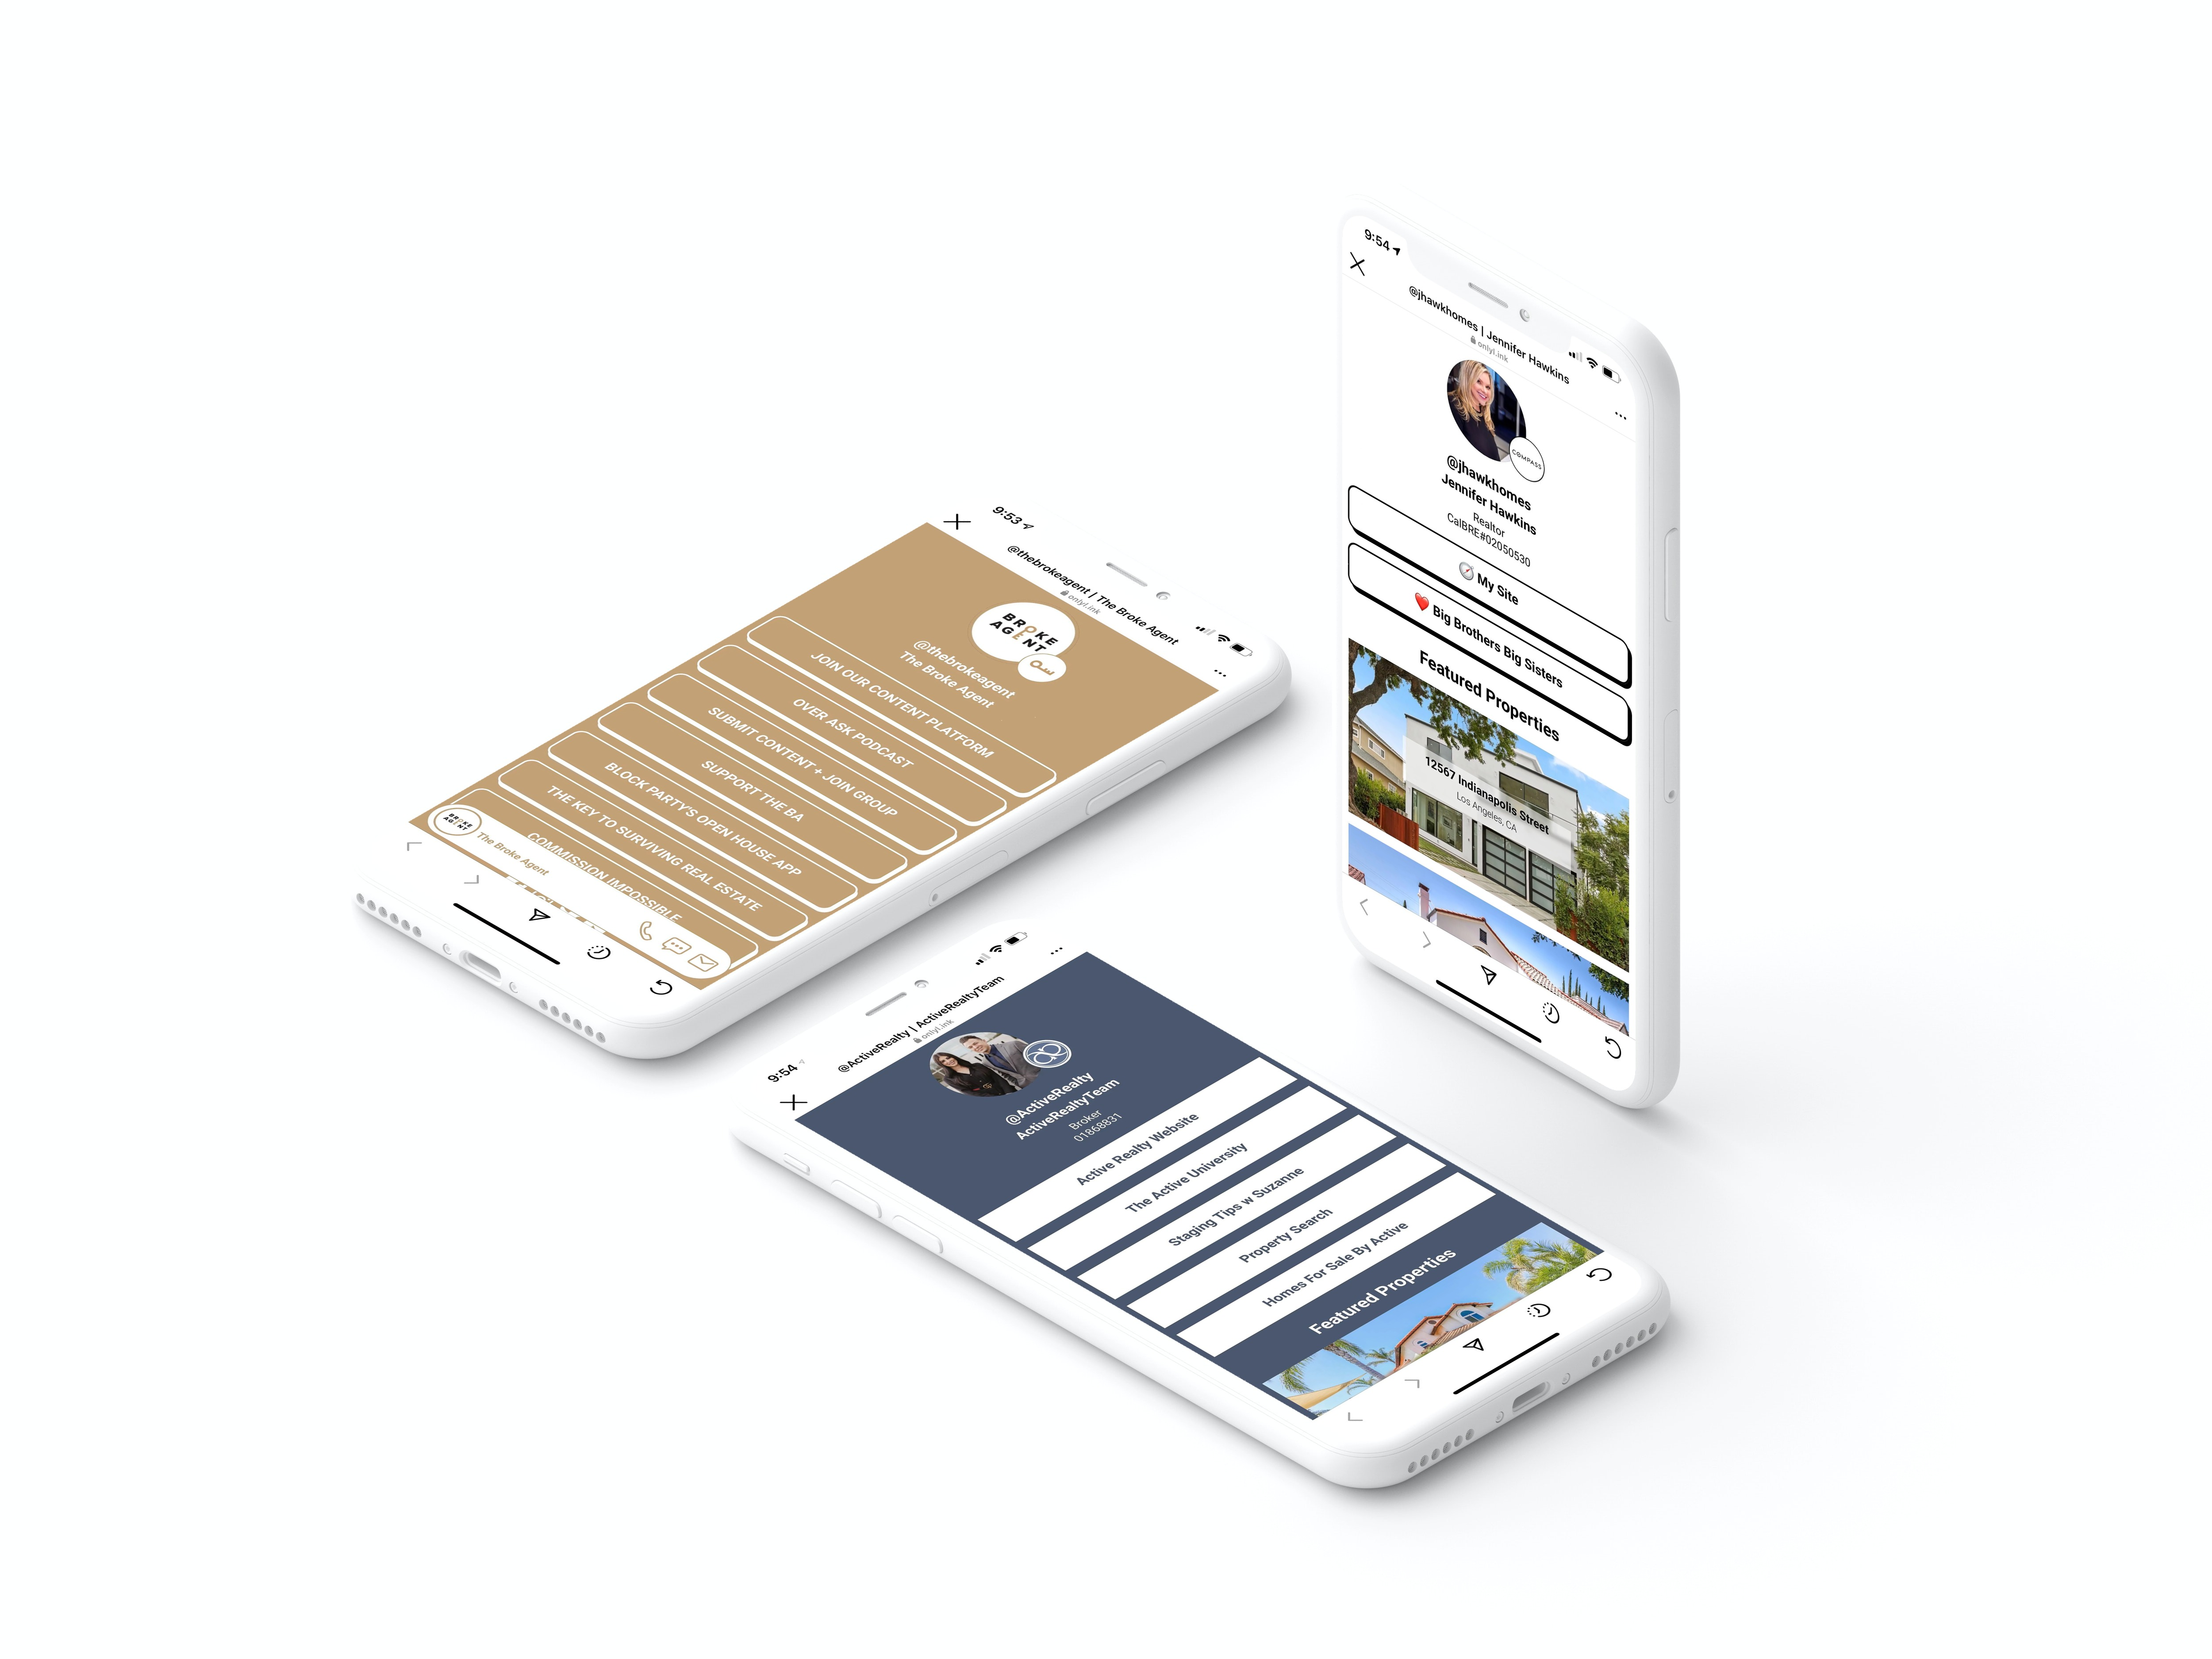 """The Instagram """"link in bio"""" that's designed for real estate agents and lenders: turn your Instagram into real estate lead magnet"""